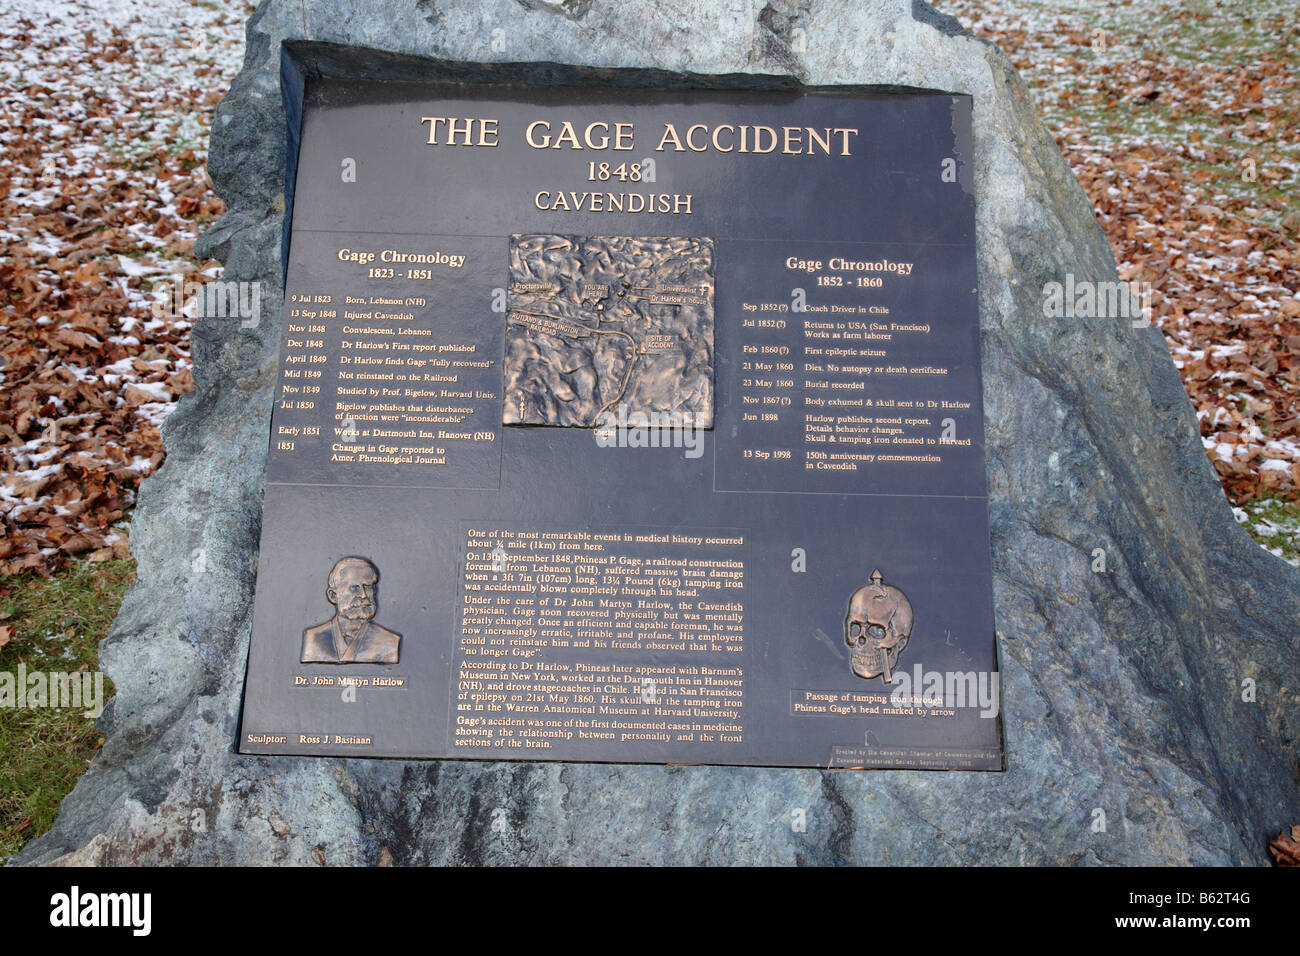 The Gage Accident plaque in Cavendish Vermont USA Stock Photo